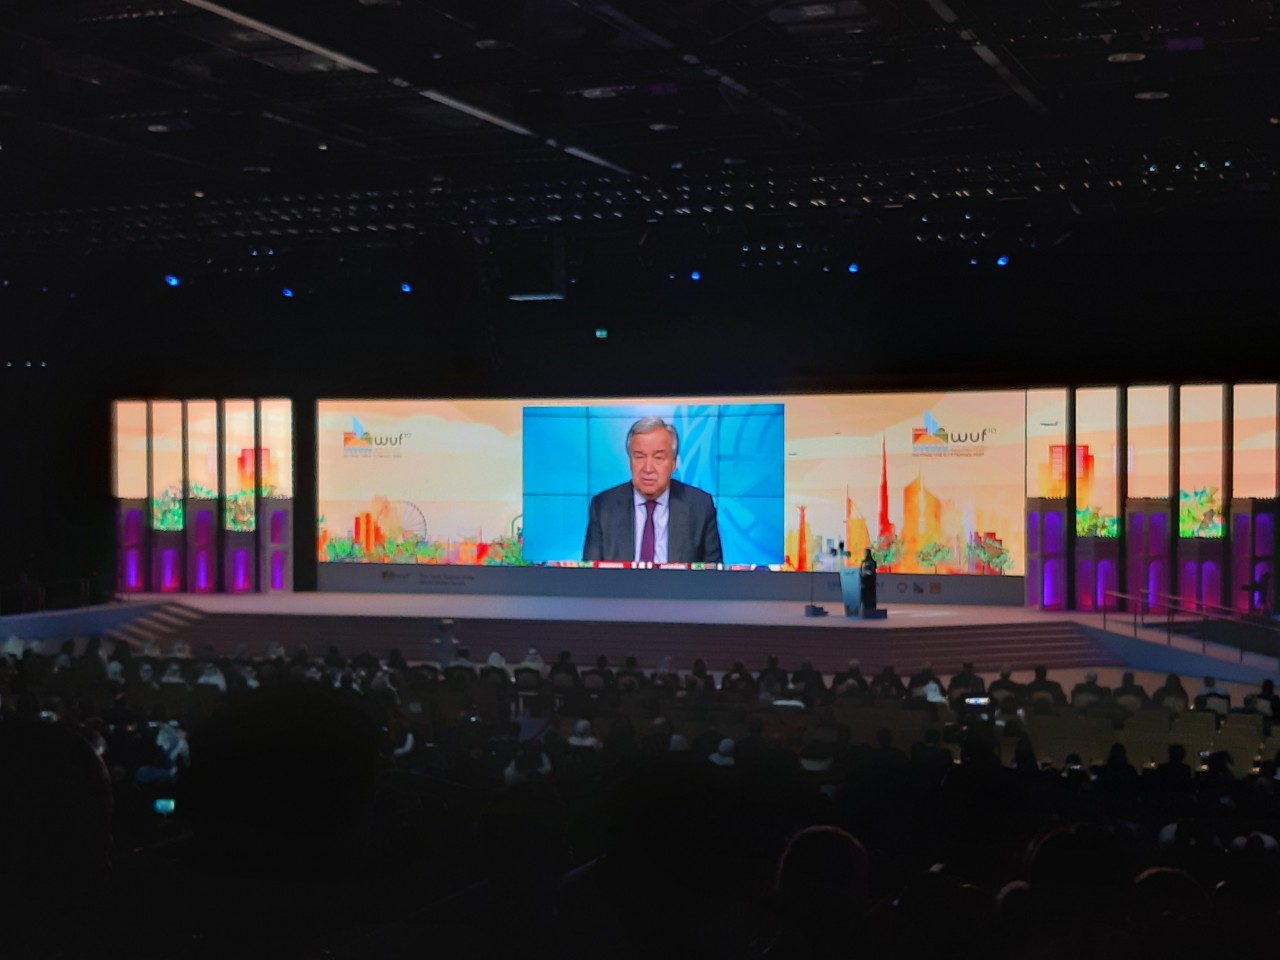 UN Secretary General Antonio Gutteres welcomes delegates to the 10th World Urban Forum